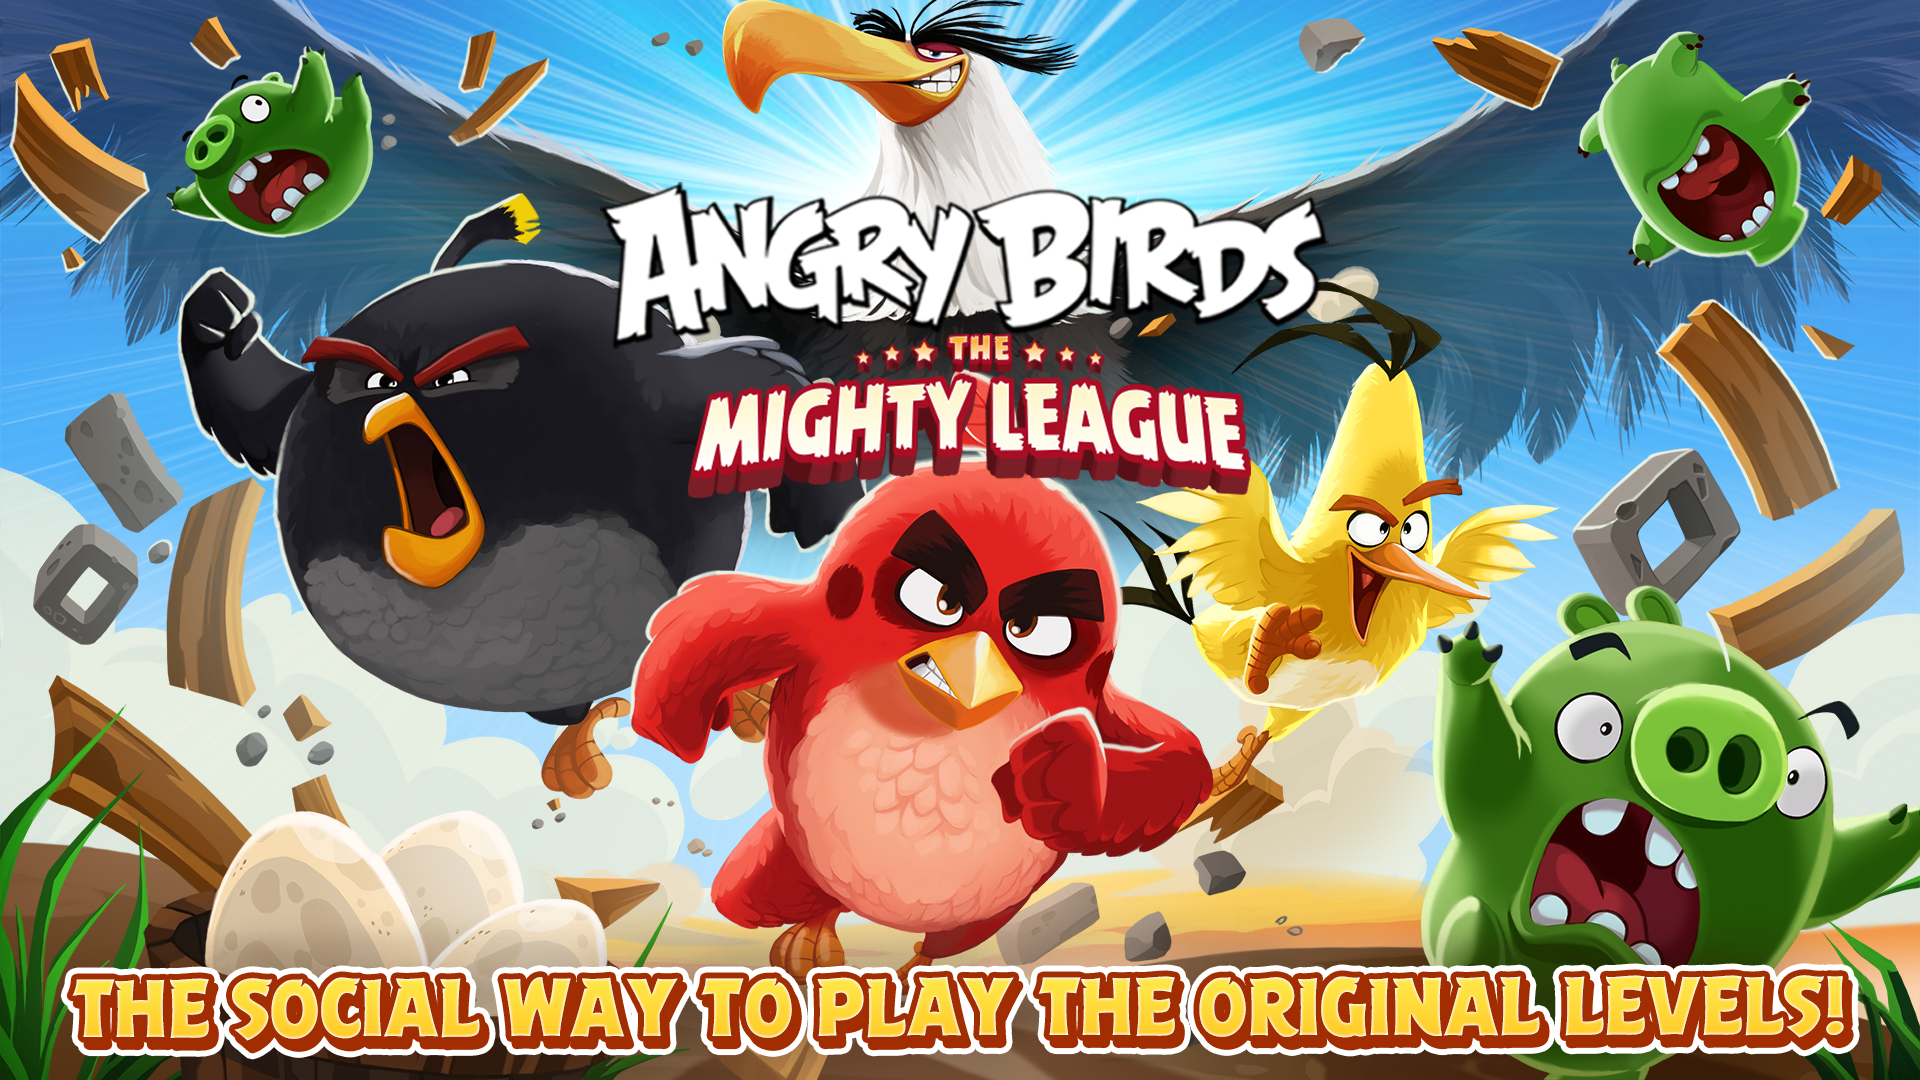 AngryBirdsClassic_MightyLeague_PostImage_Keyart_1920x1080_tagline2